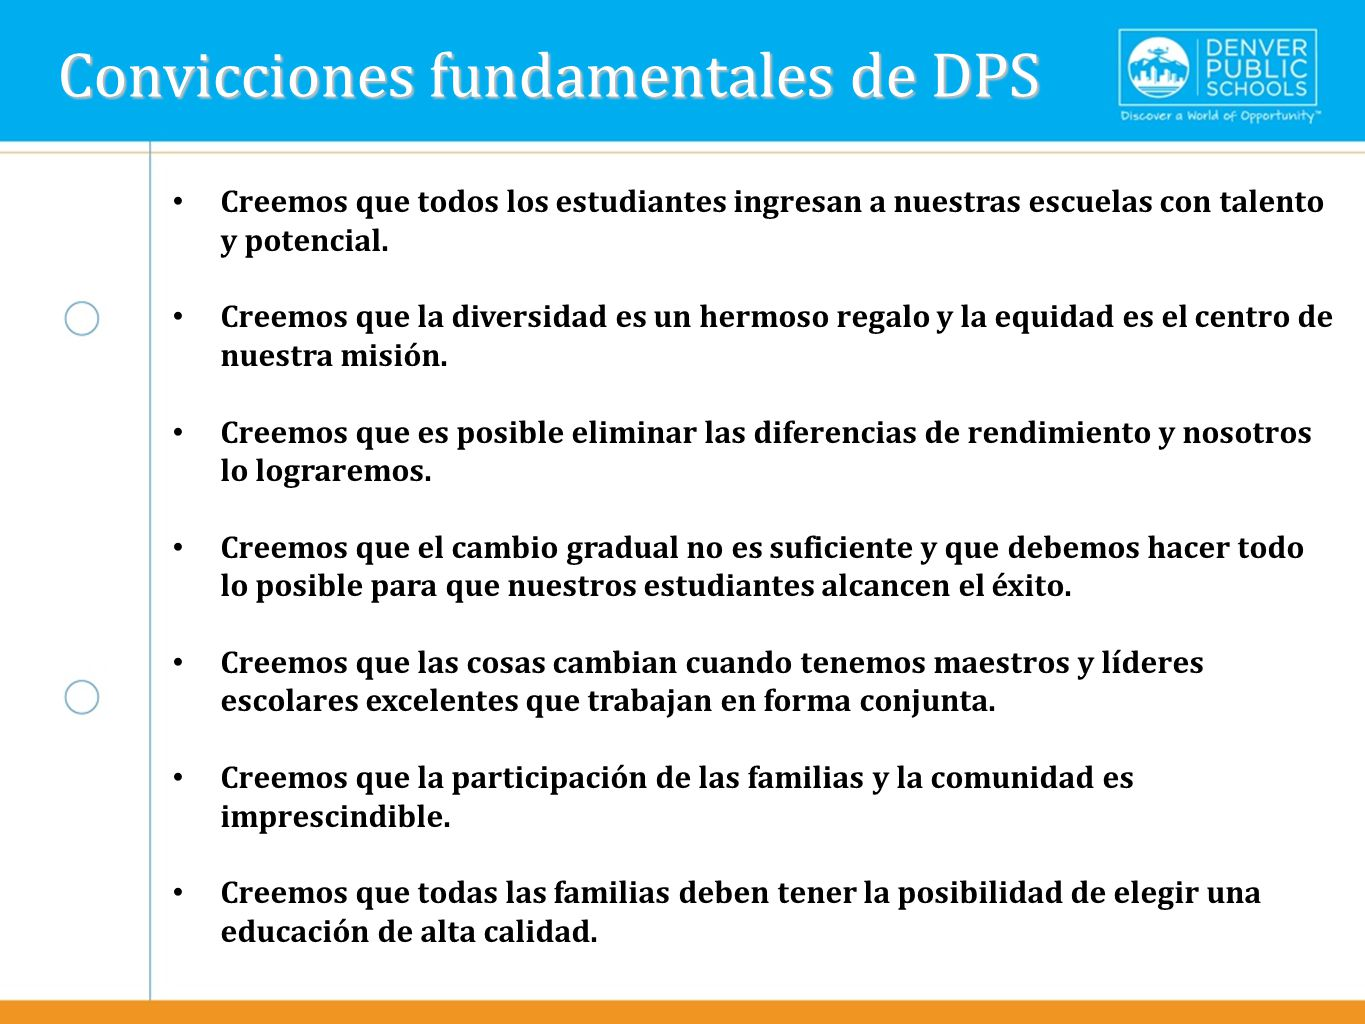 Text here Convicciones fundamentales de DPS